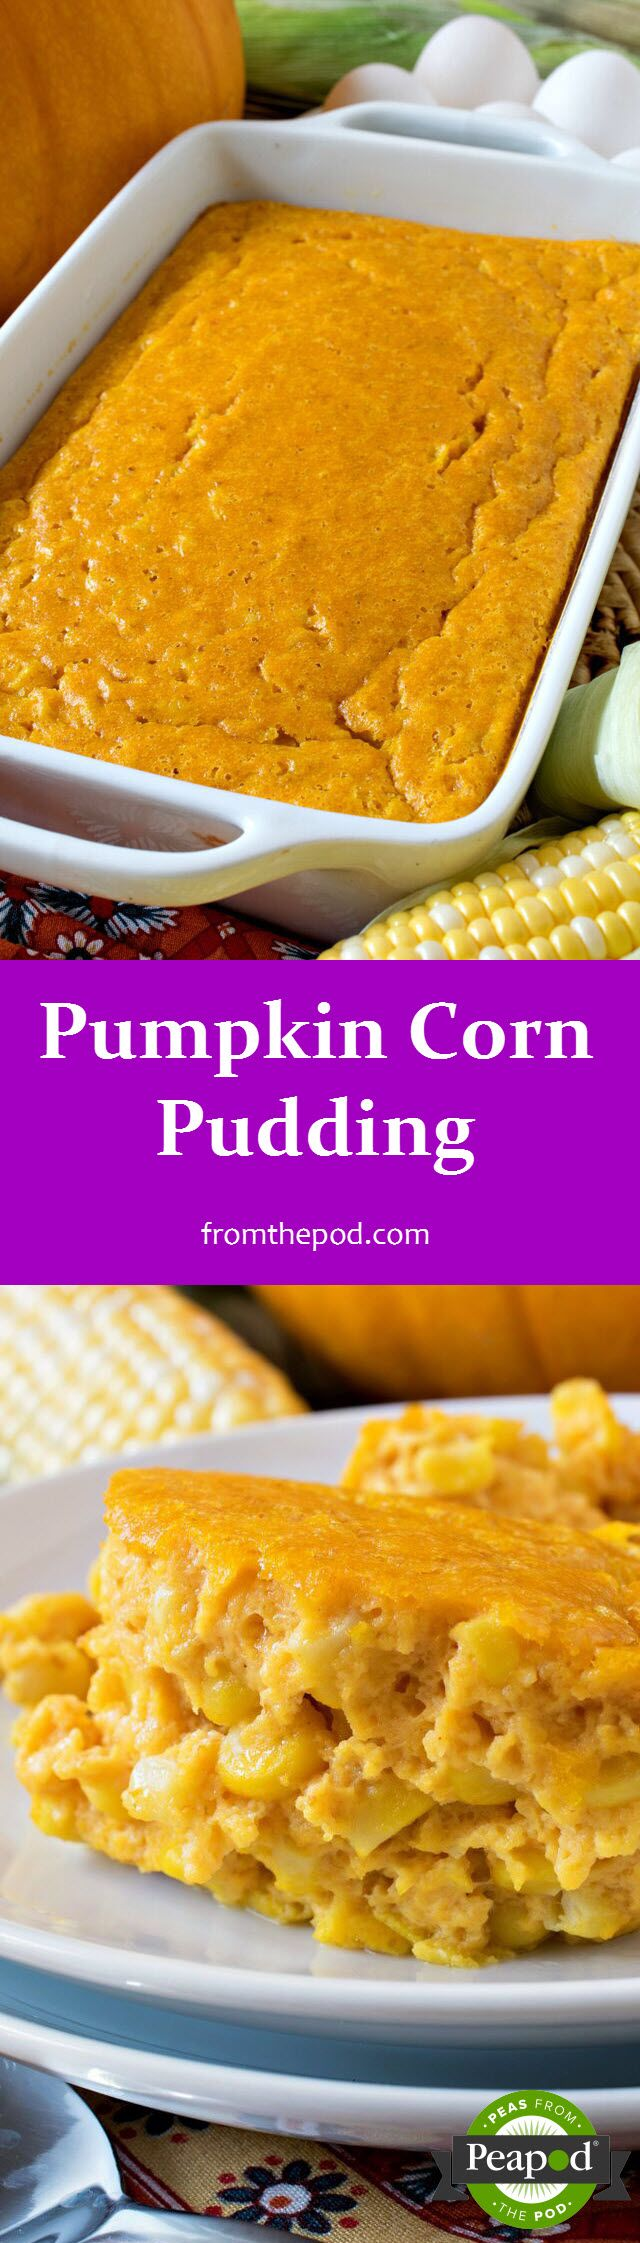 Introduce a new side for #Thanksgiving and skip the old standbys like Green Bean Casserole. We heartily recommend this Pumpkin Corn Pudding recipe from our blogger partner @afamilyfeast. It proves that you can enjoy pumpkin in more than just pie.